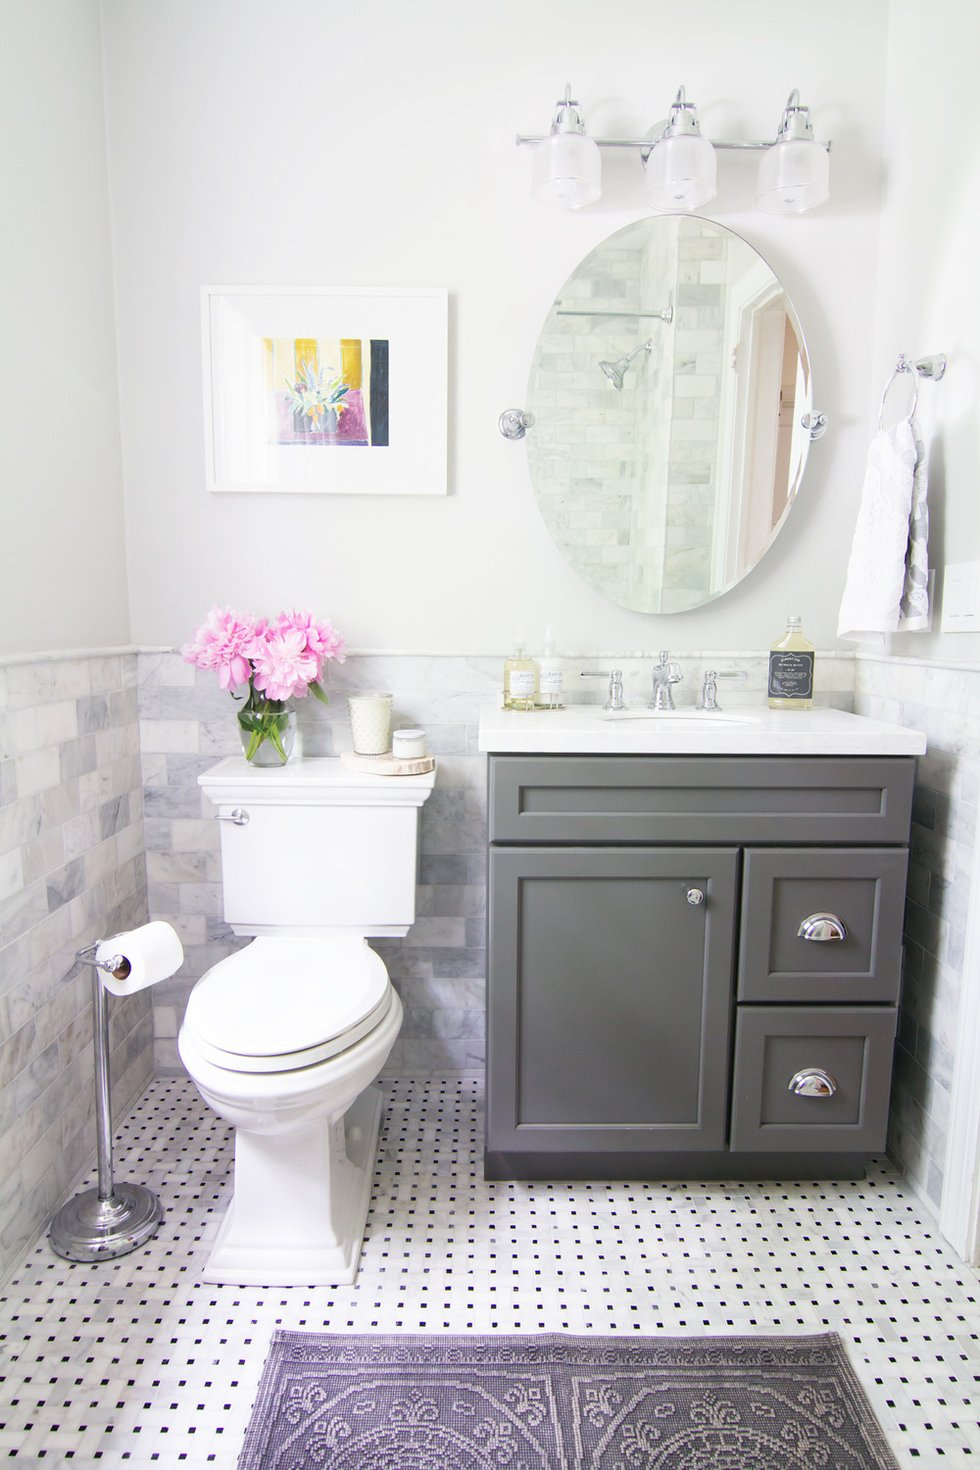 Modern and simple small bathroom ideas you can try at home for Simple small bathroom design ideas